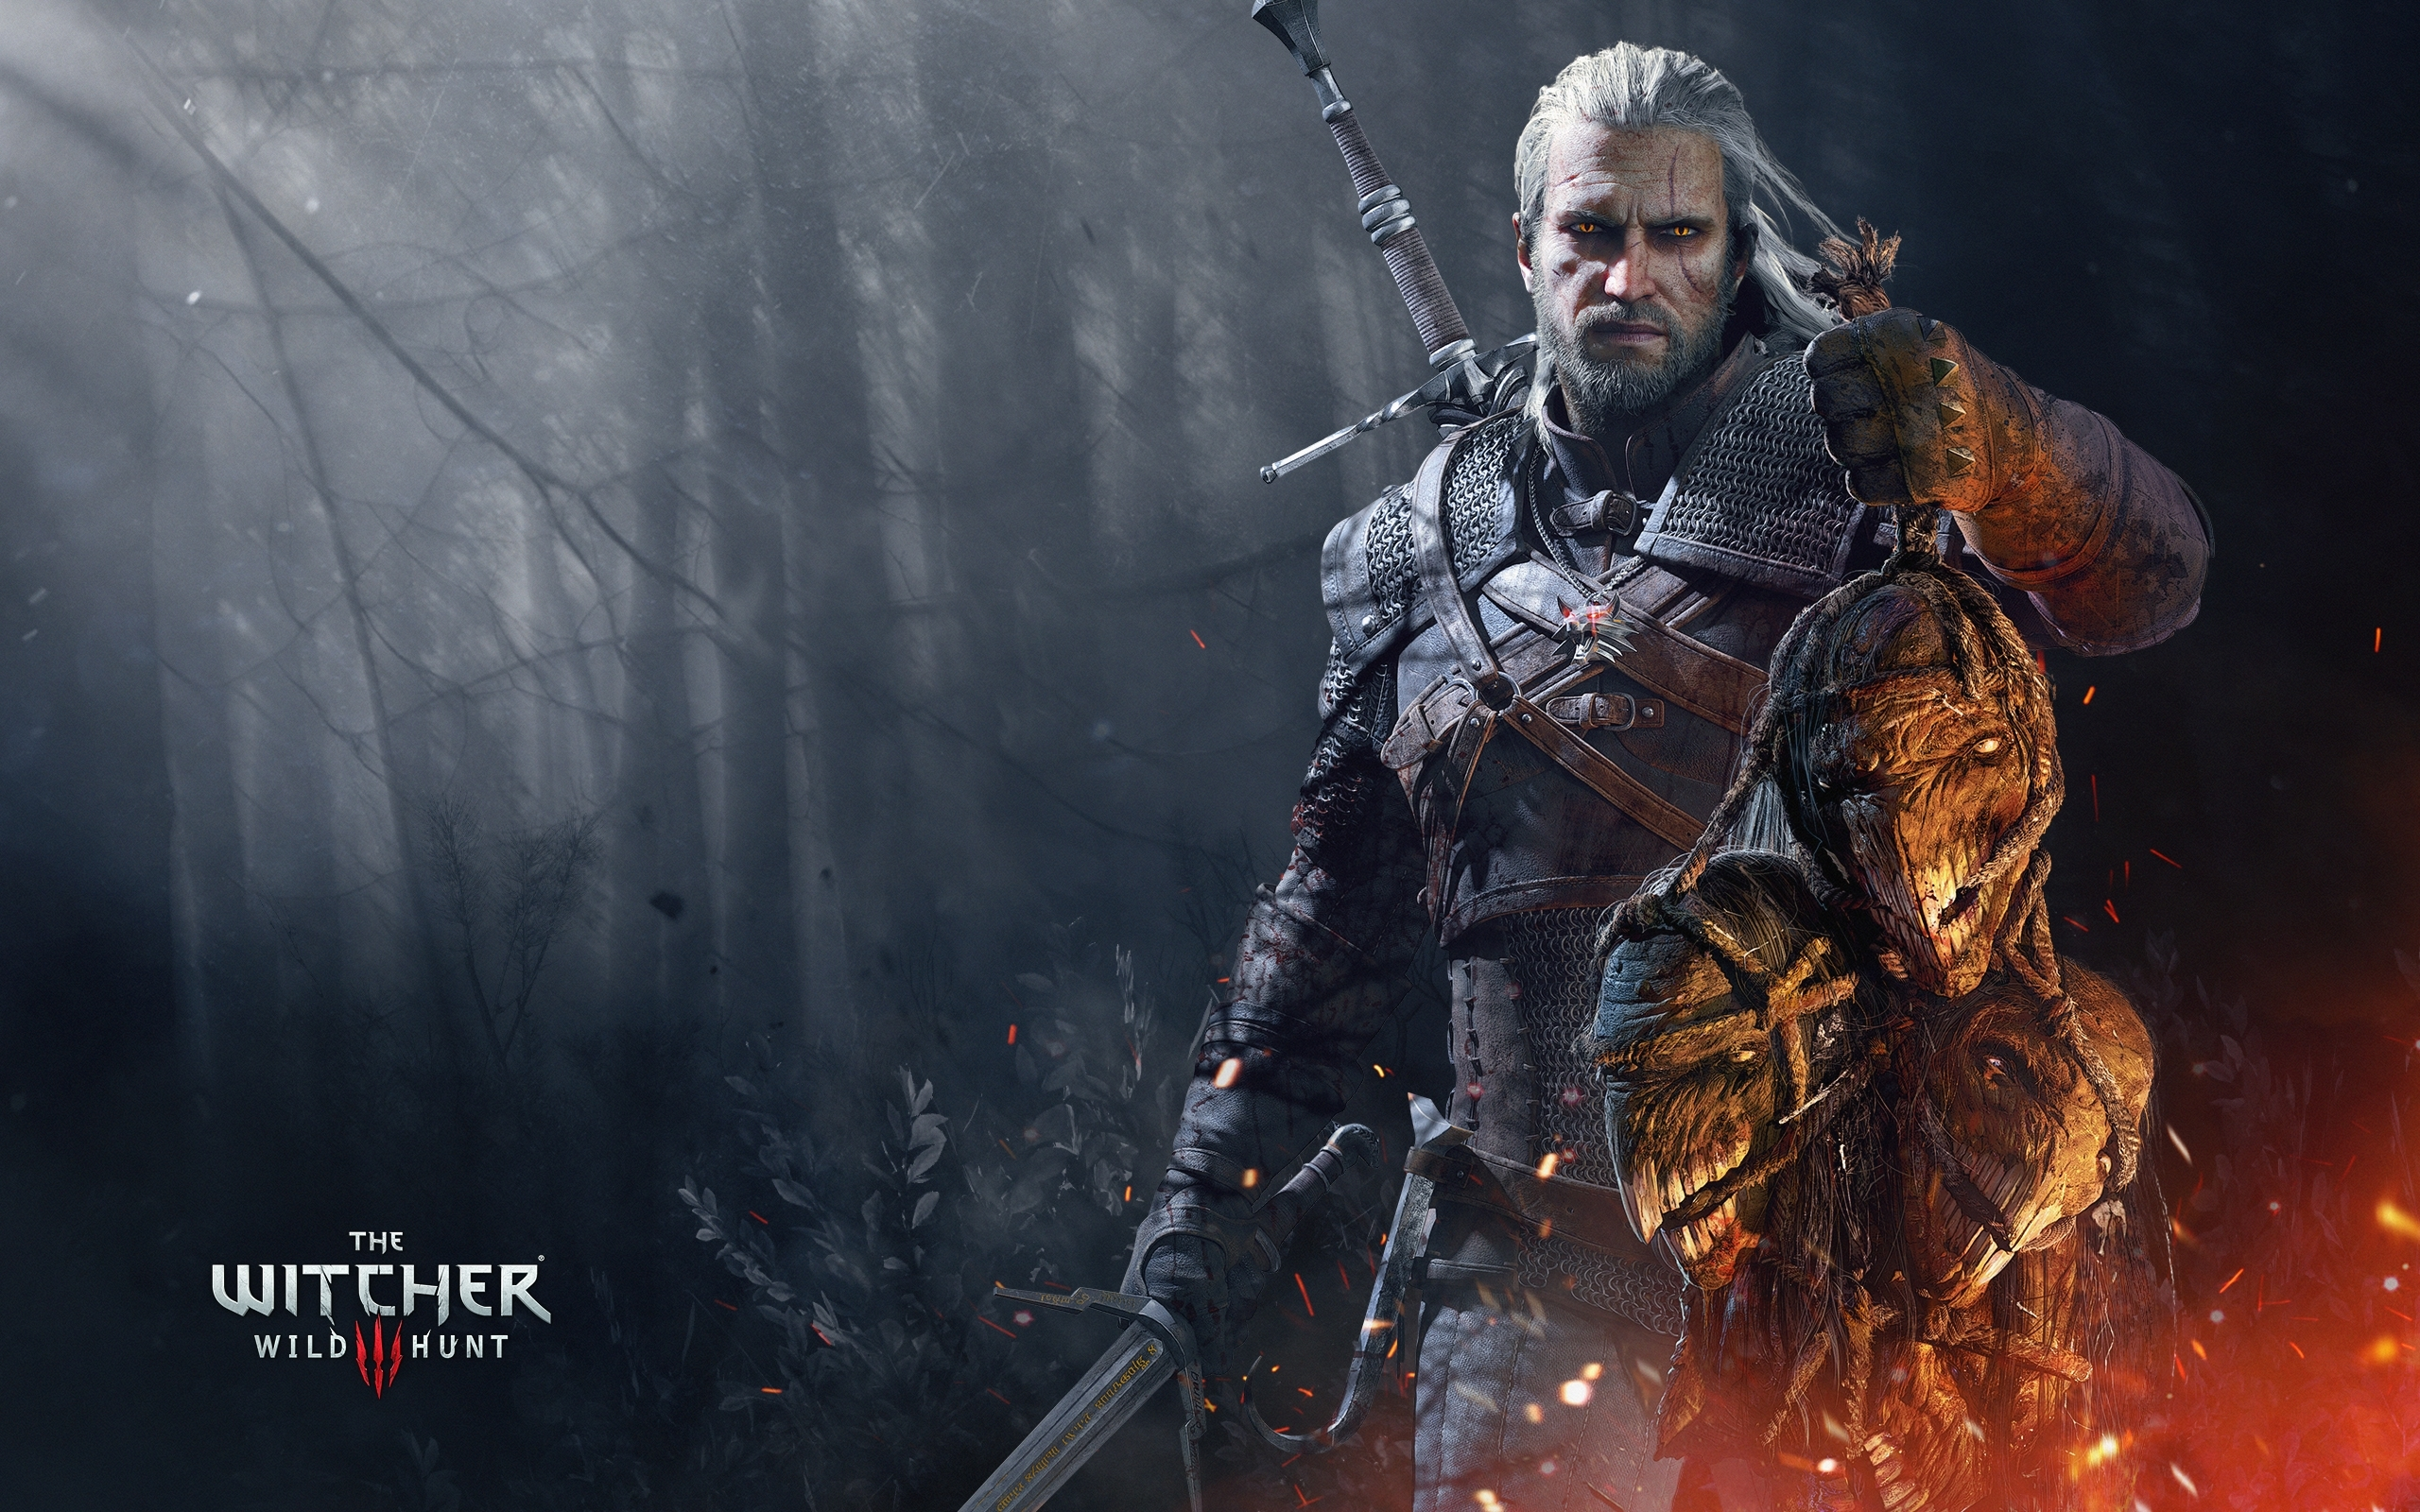 the witcher 3 wild hunt geralt trophies wallpapers | hd wallpapers